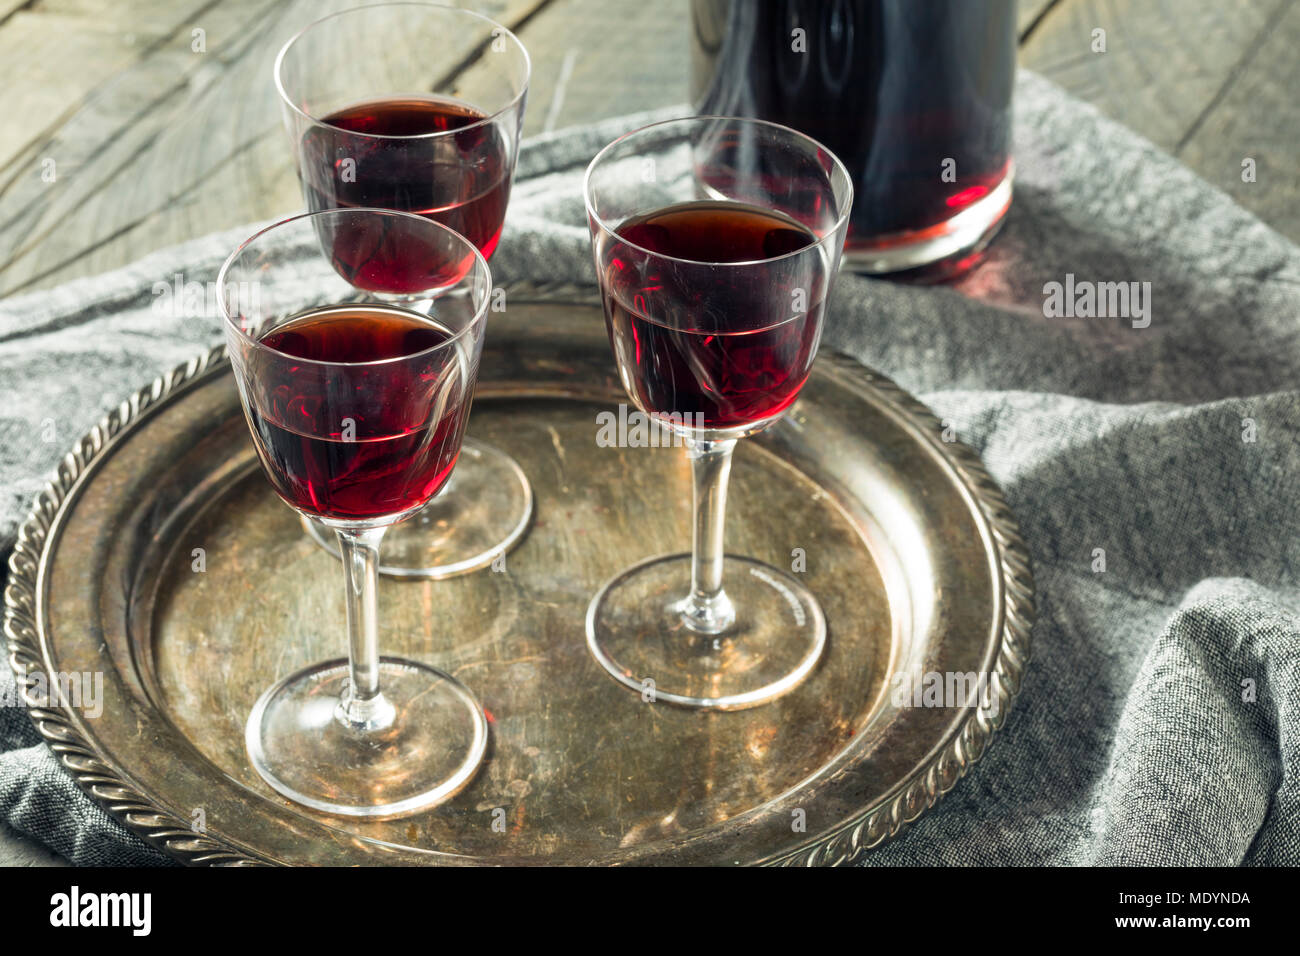 Sweet Port Dessert Wine ready to Drink - Stock Image